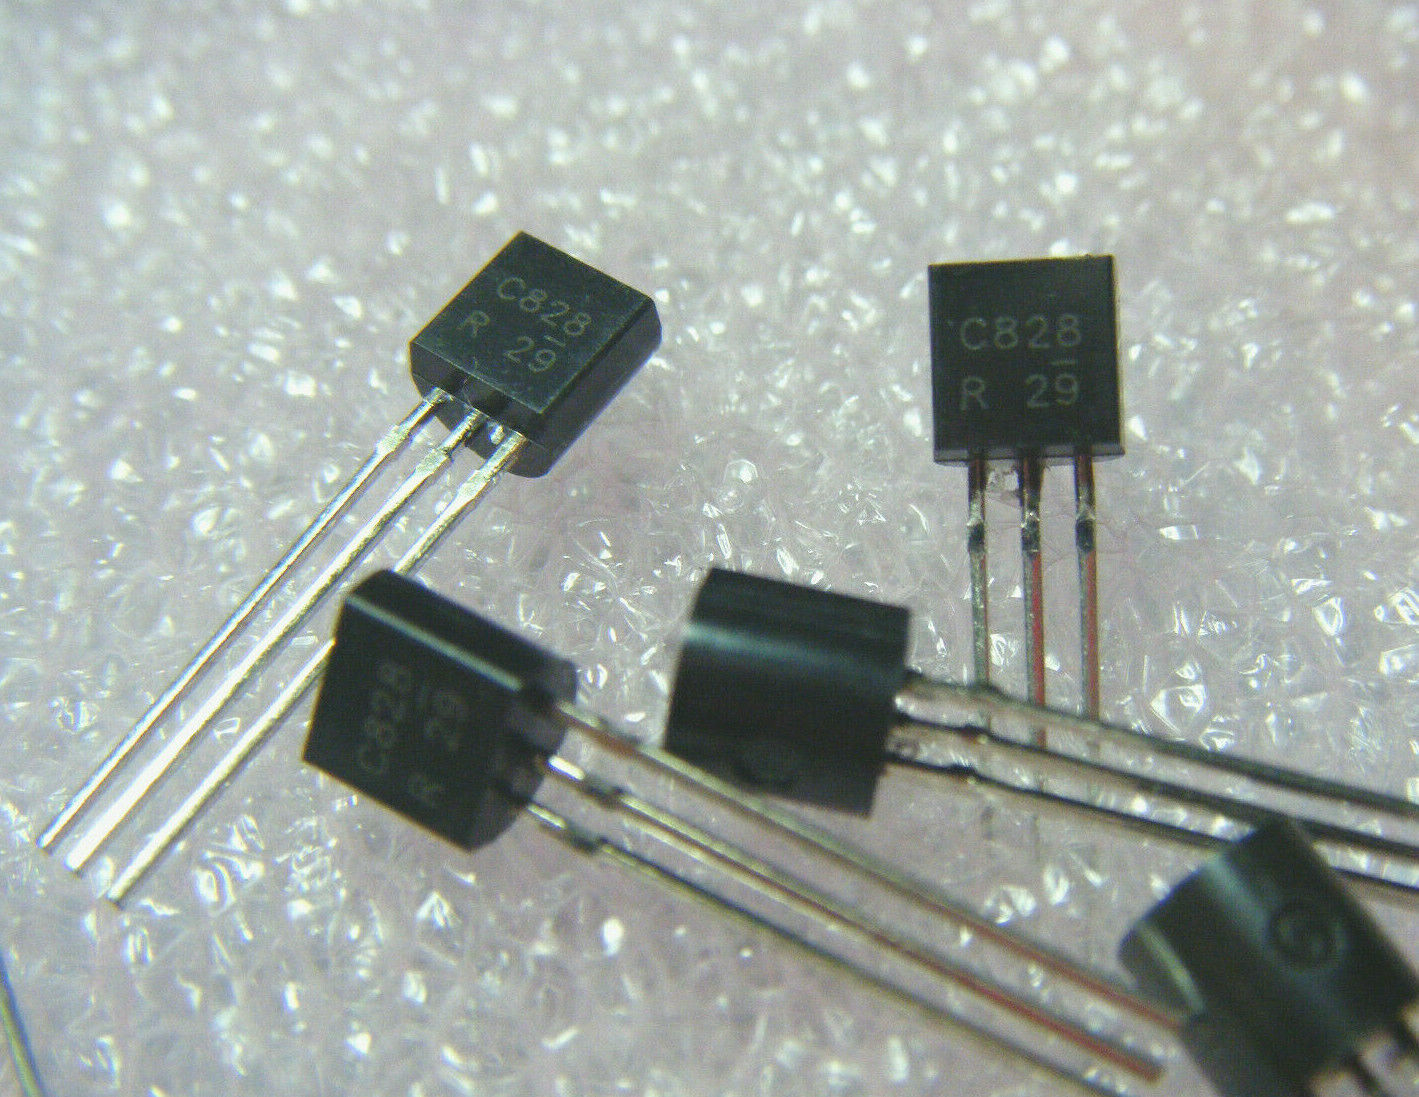 10 PCS 2SC1685 HFE 150 .25 W .1 A TO-92B 50 V NPN TRANSISTOR FT 75